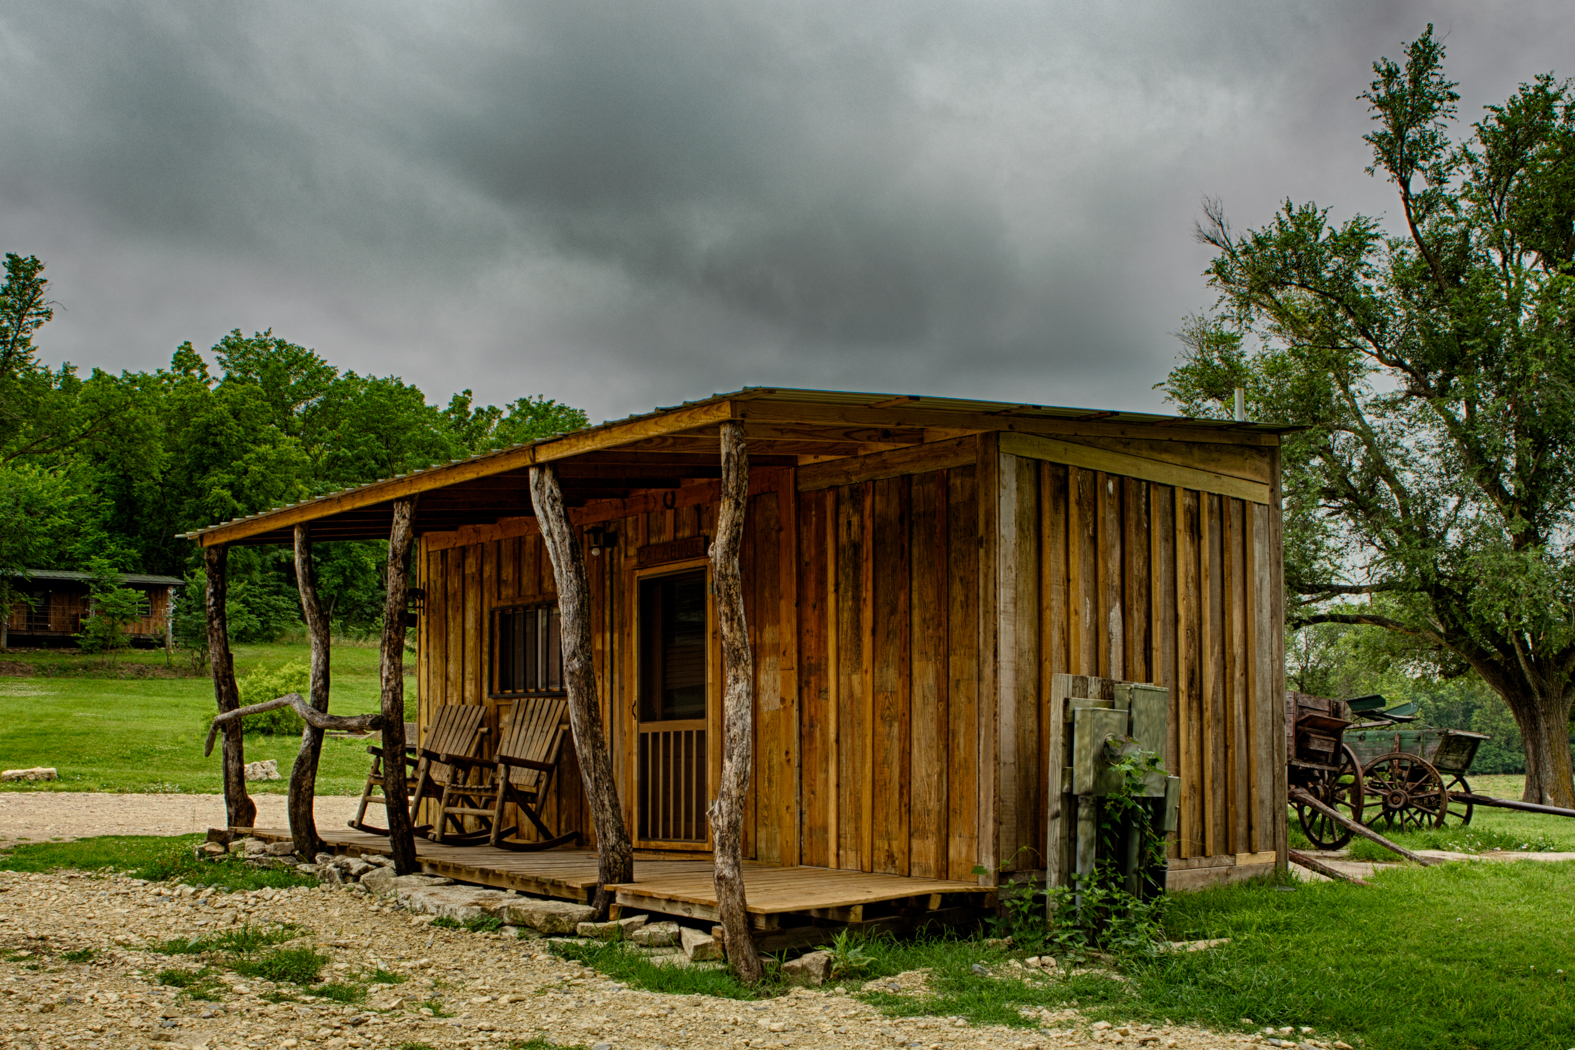 The Calaboose at the Flying W Ranch